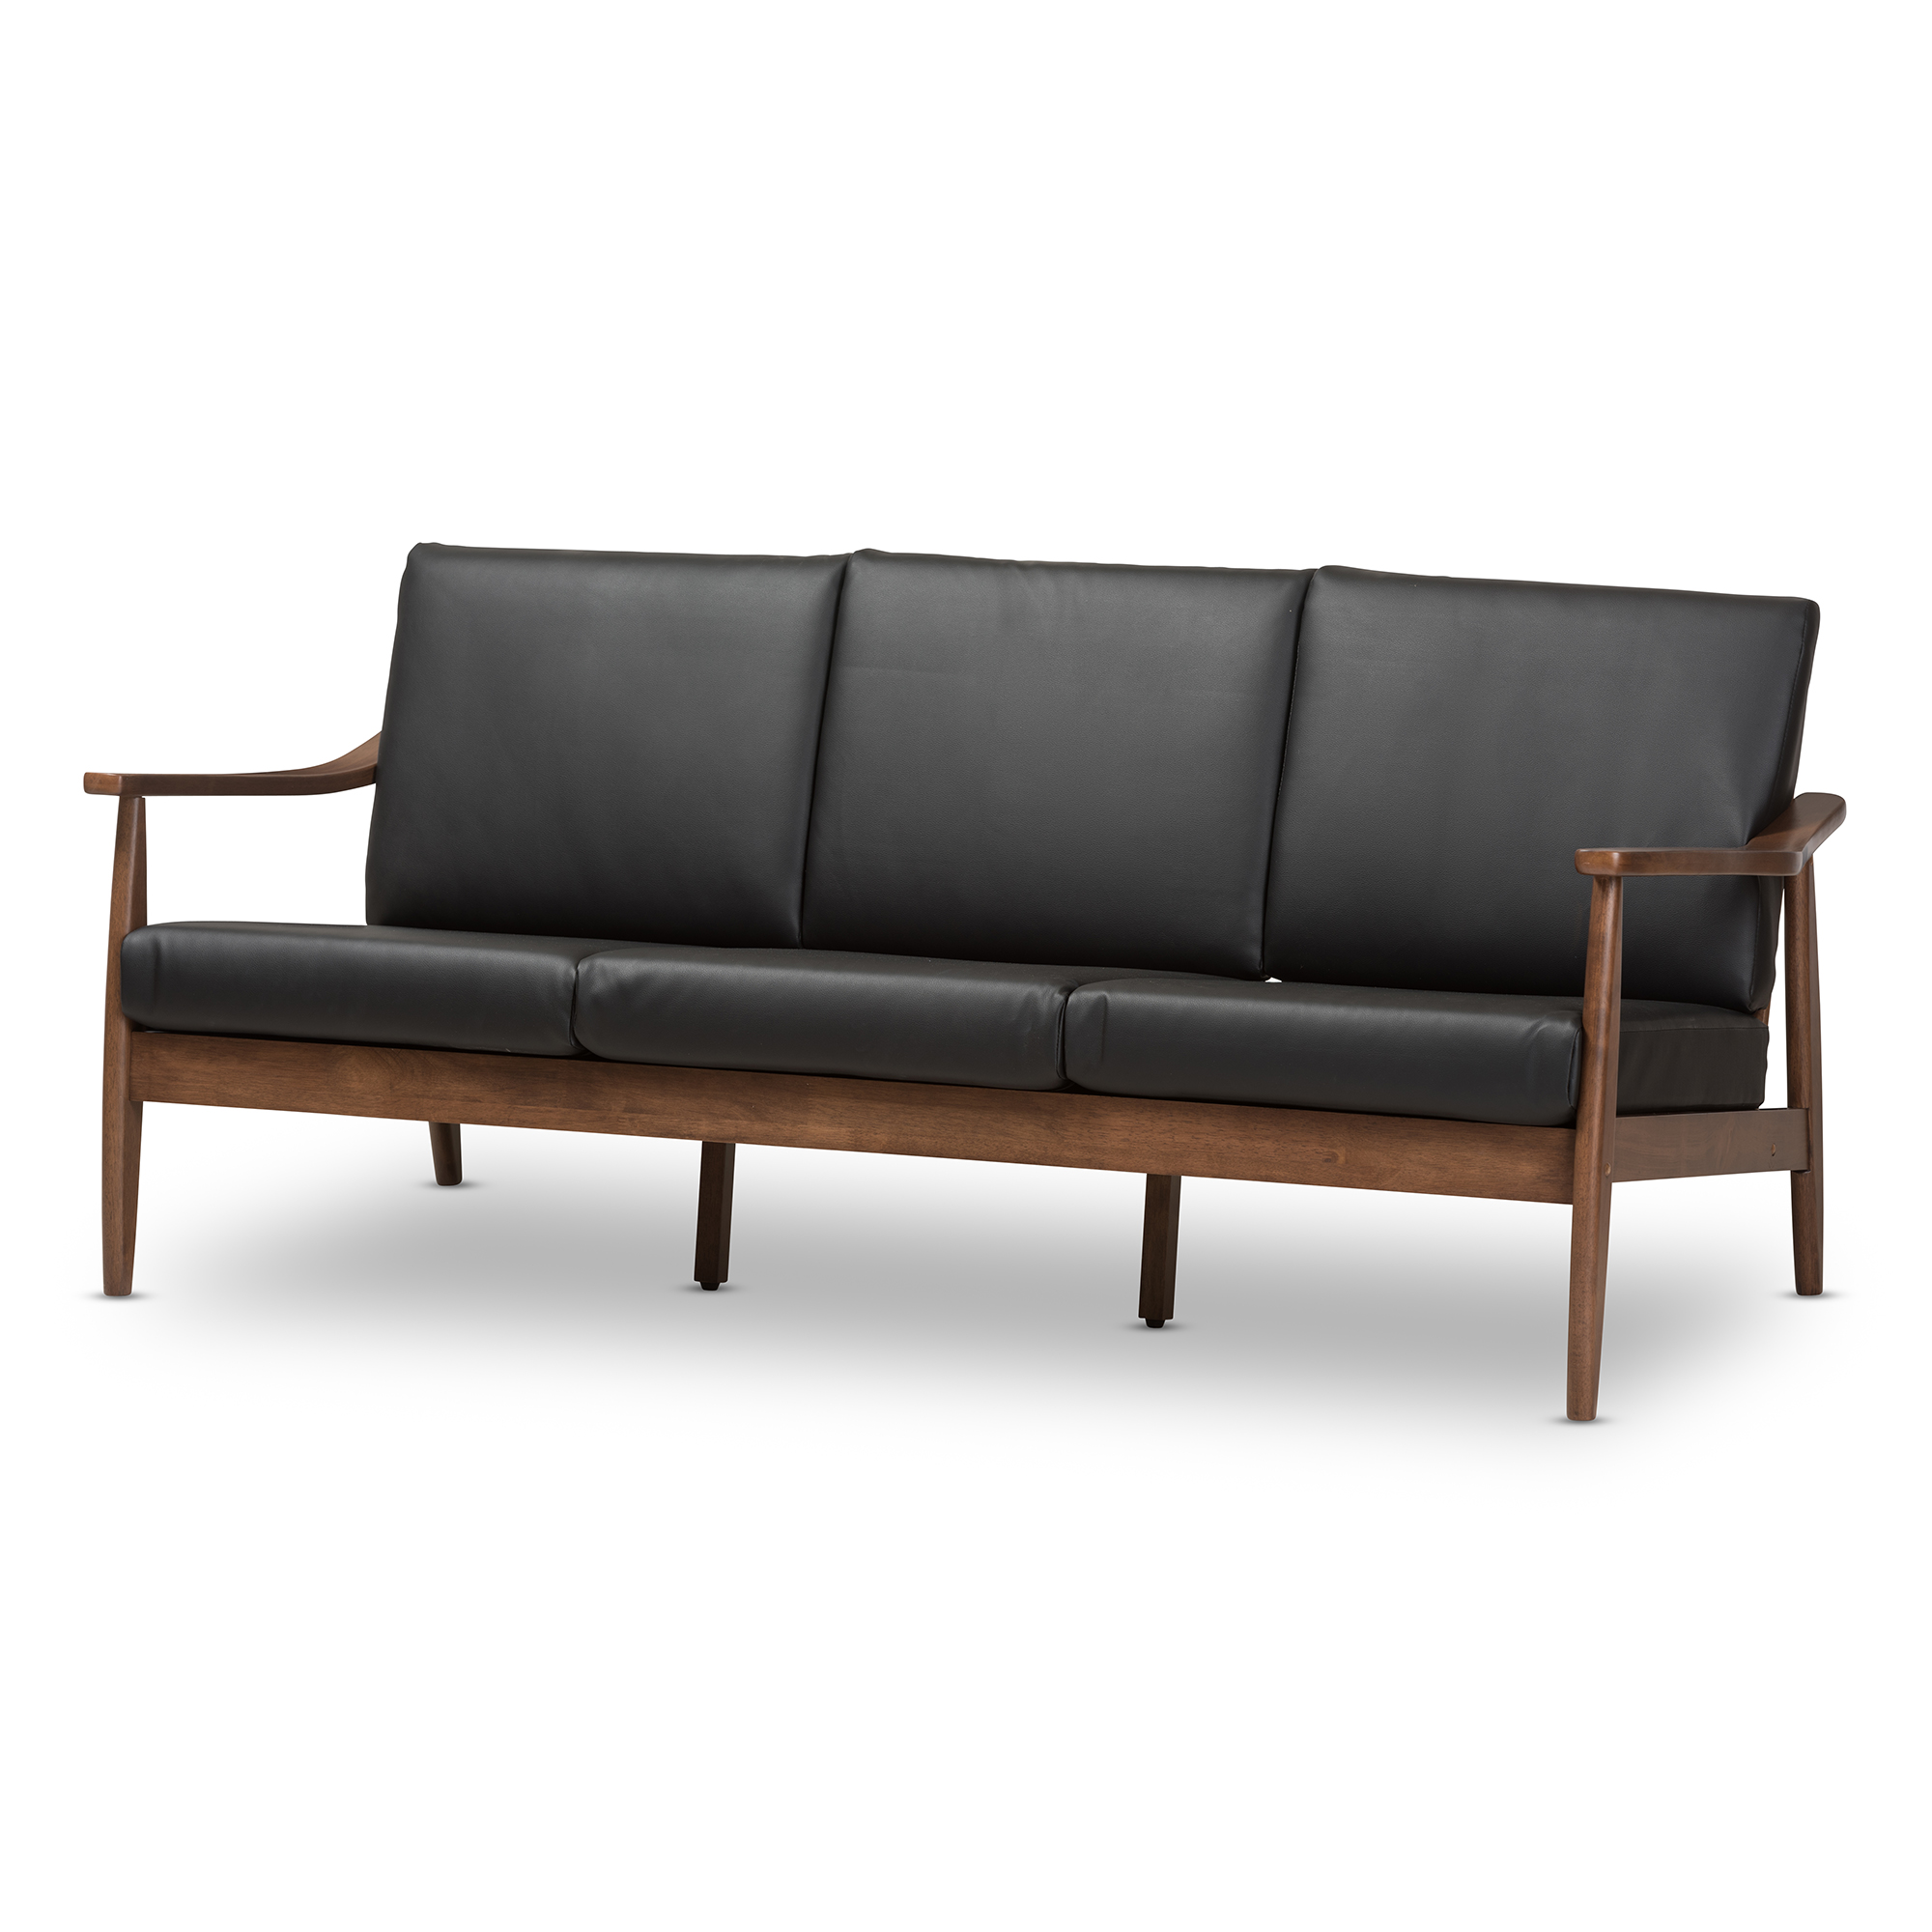 baxton studio venza midcentury modern walnut wood black faux leather 3seater sofa